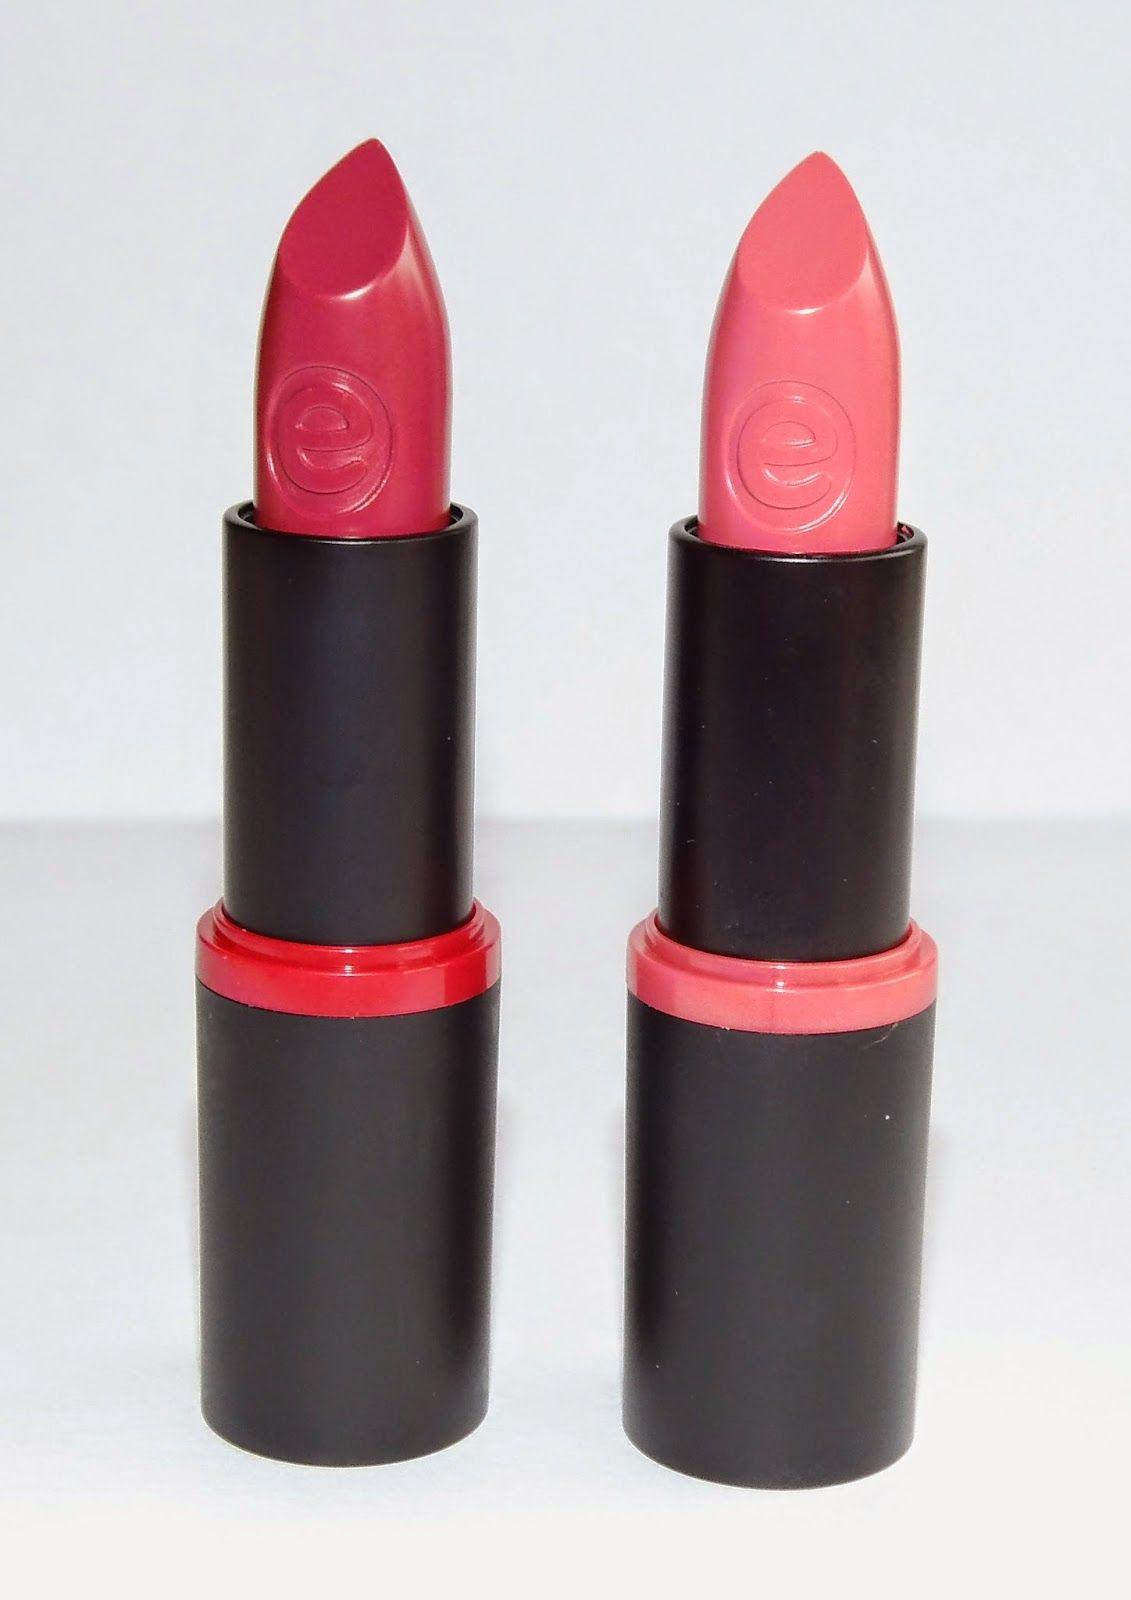 Essence lipsticks: love me and on the catwalk review + swatches